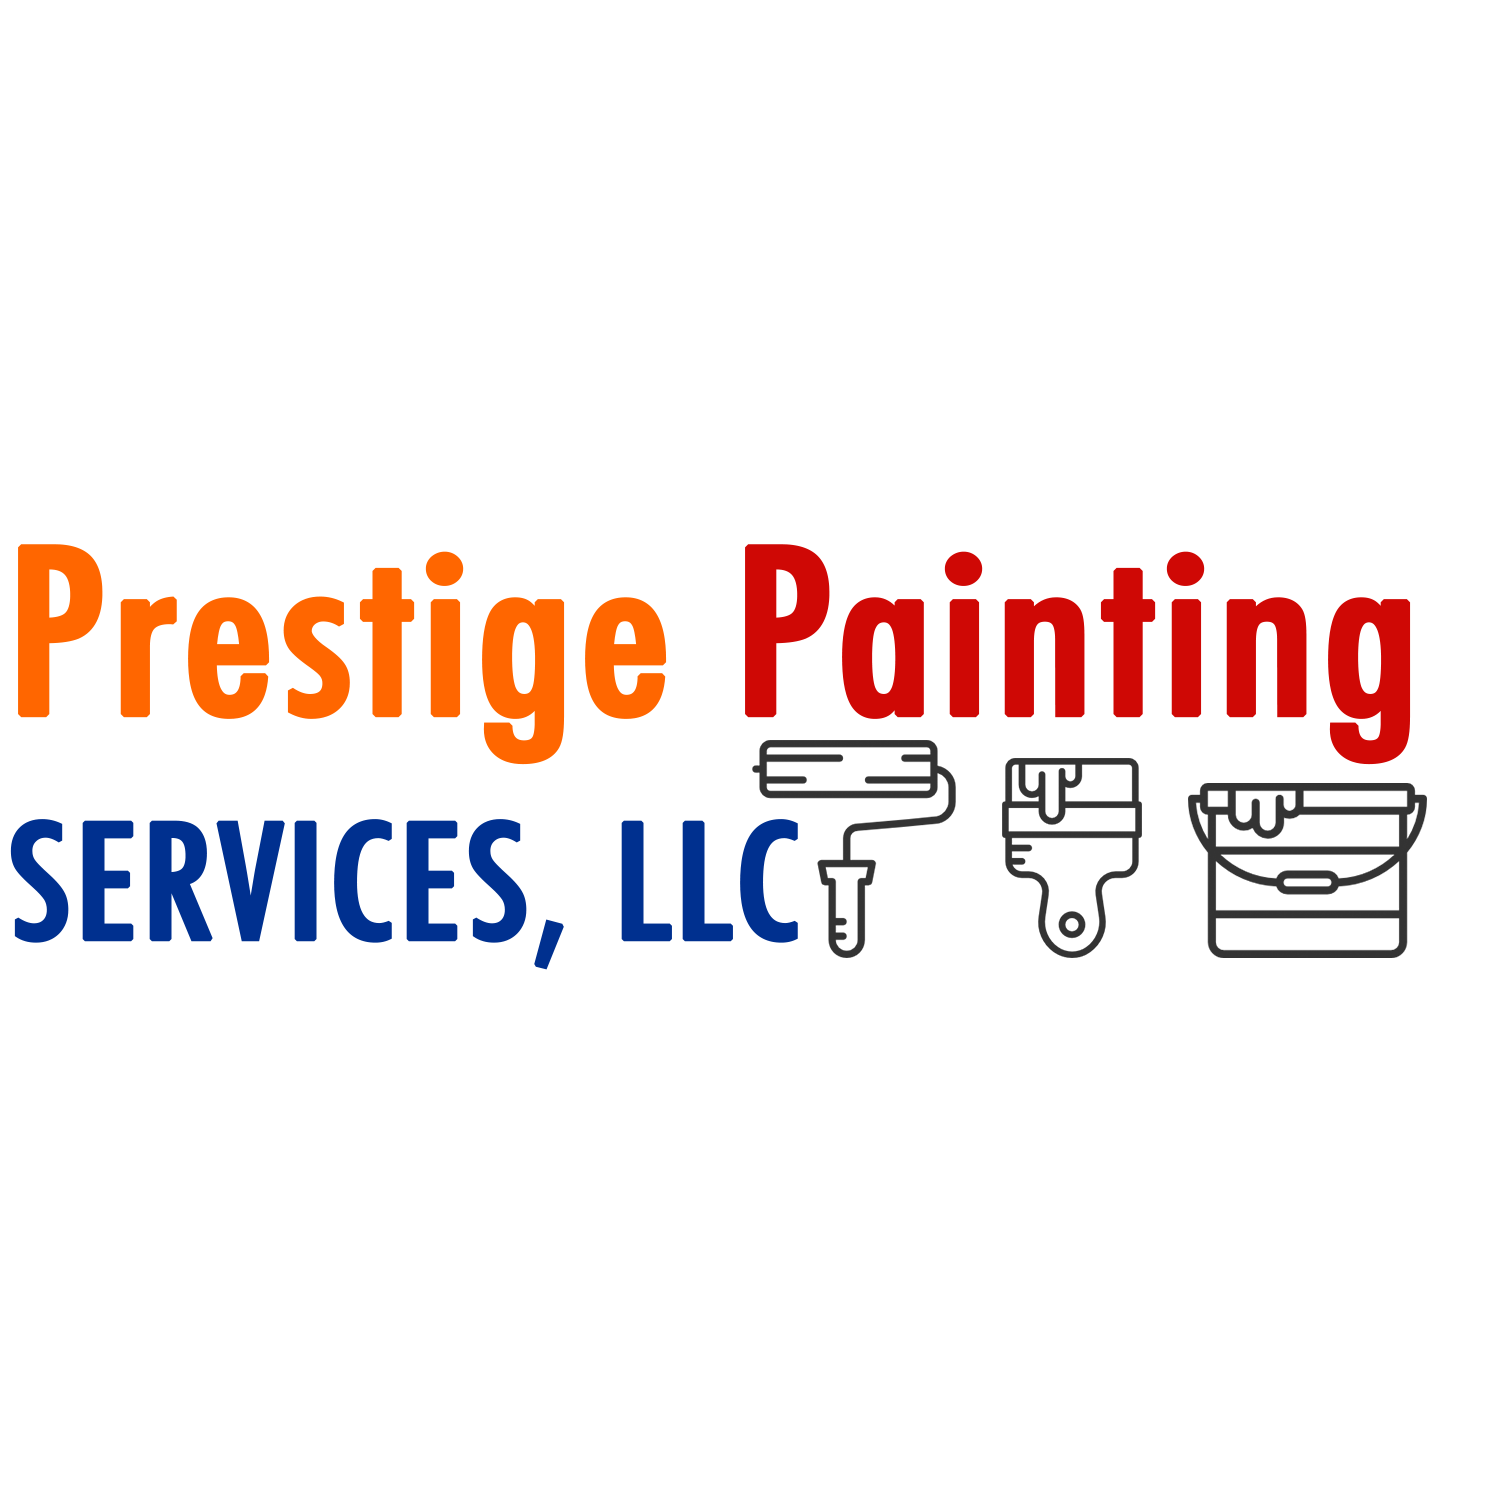 image of Prestige Painting Services, LLC